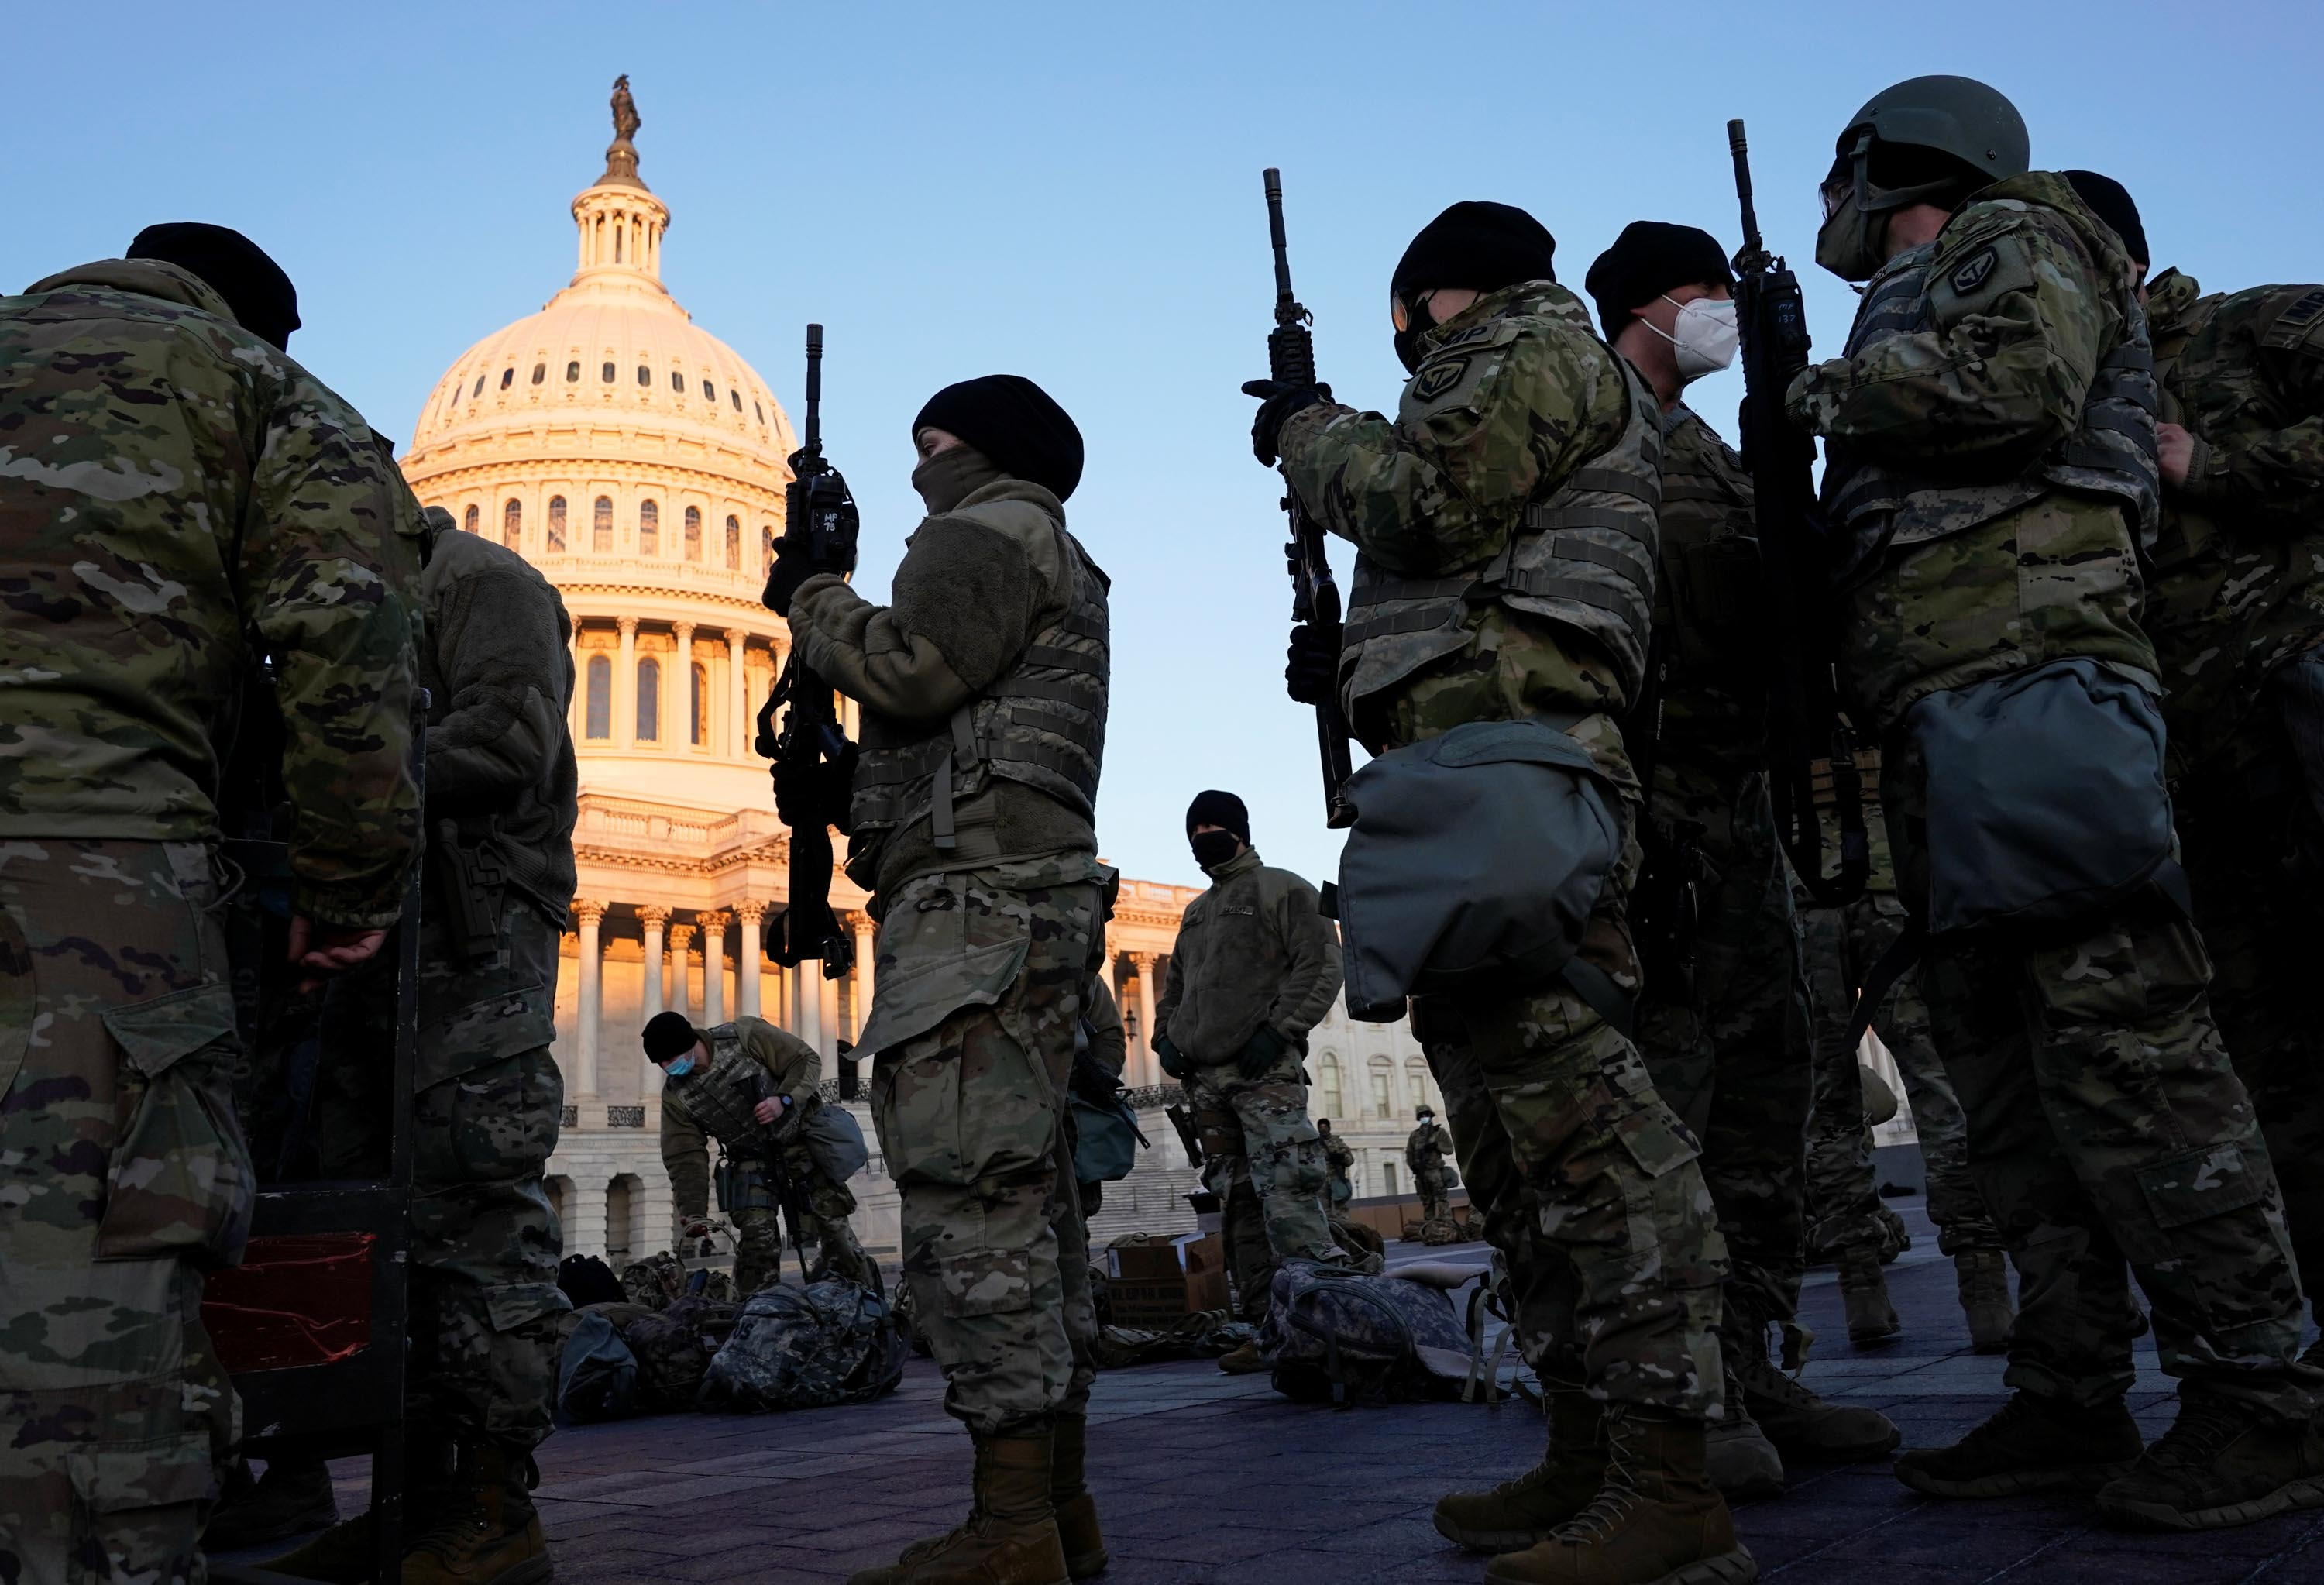 Members of the National Guard are given weapons before Democrats begin debating one article of impeachment against President Trump, outside the US Capitol in Washington, DC, on Wednesday, January 13.